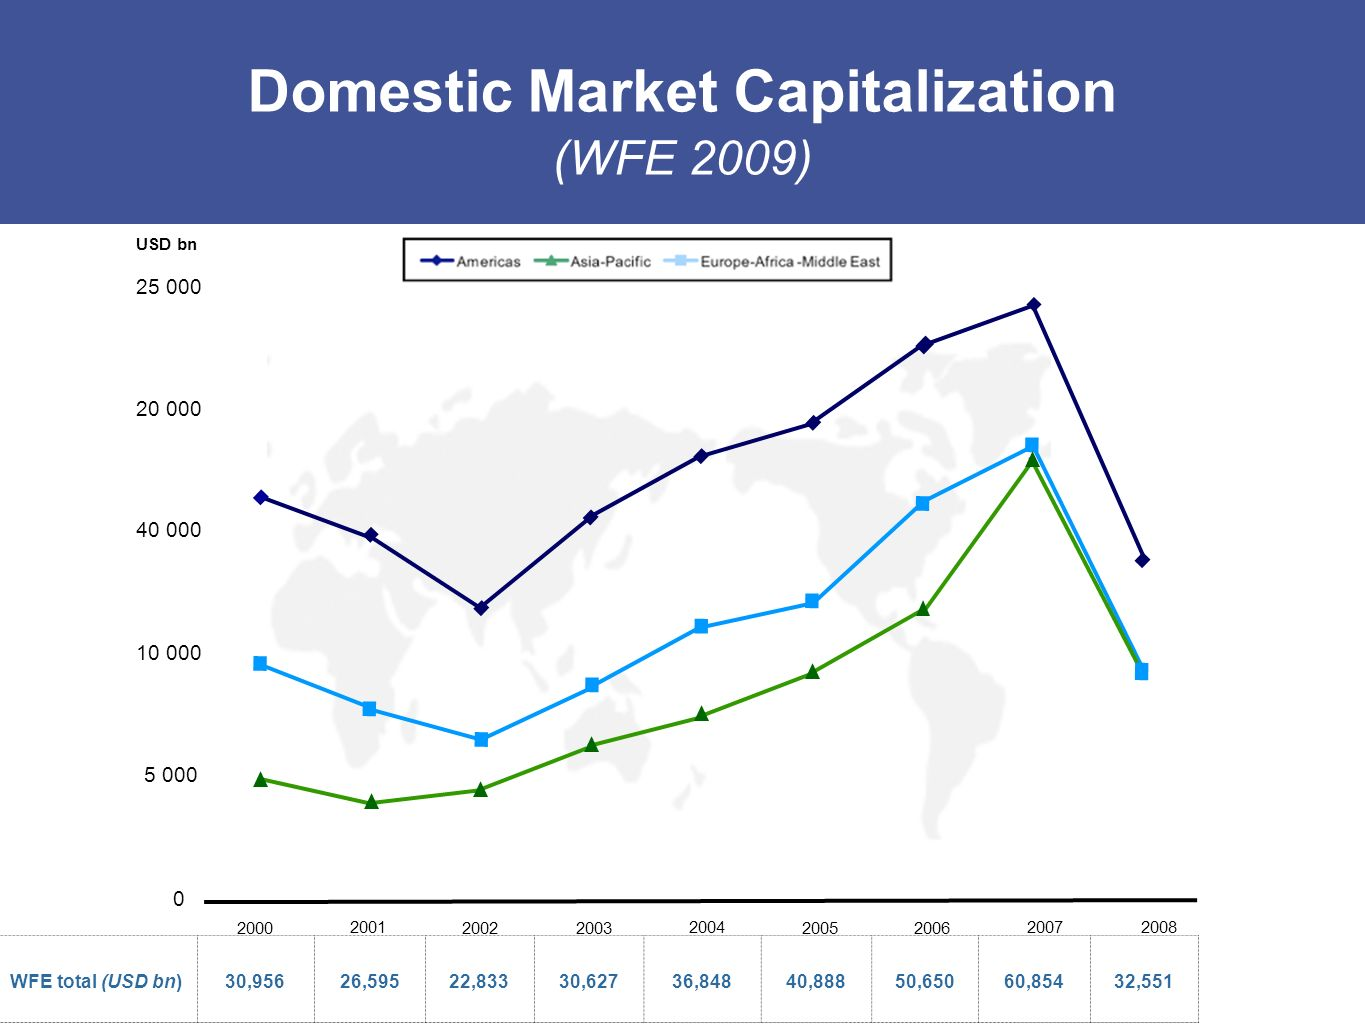 Domestic Market Capitalization